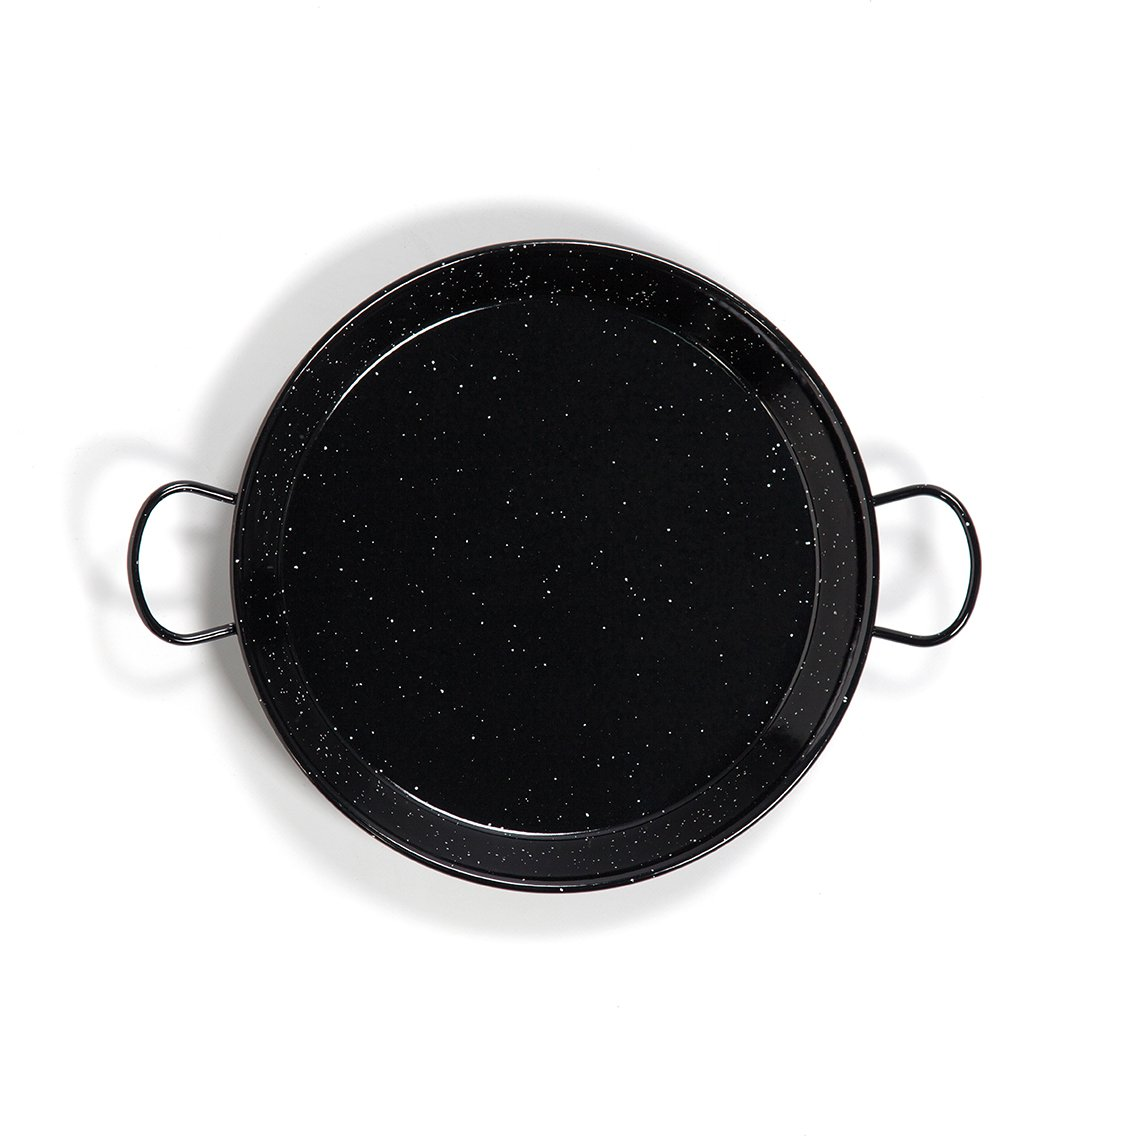 Enamelled Steel Valencian paella pan. 17Inch / 42cm / 10 Servings